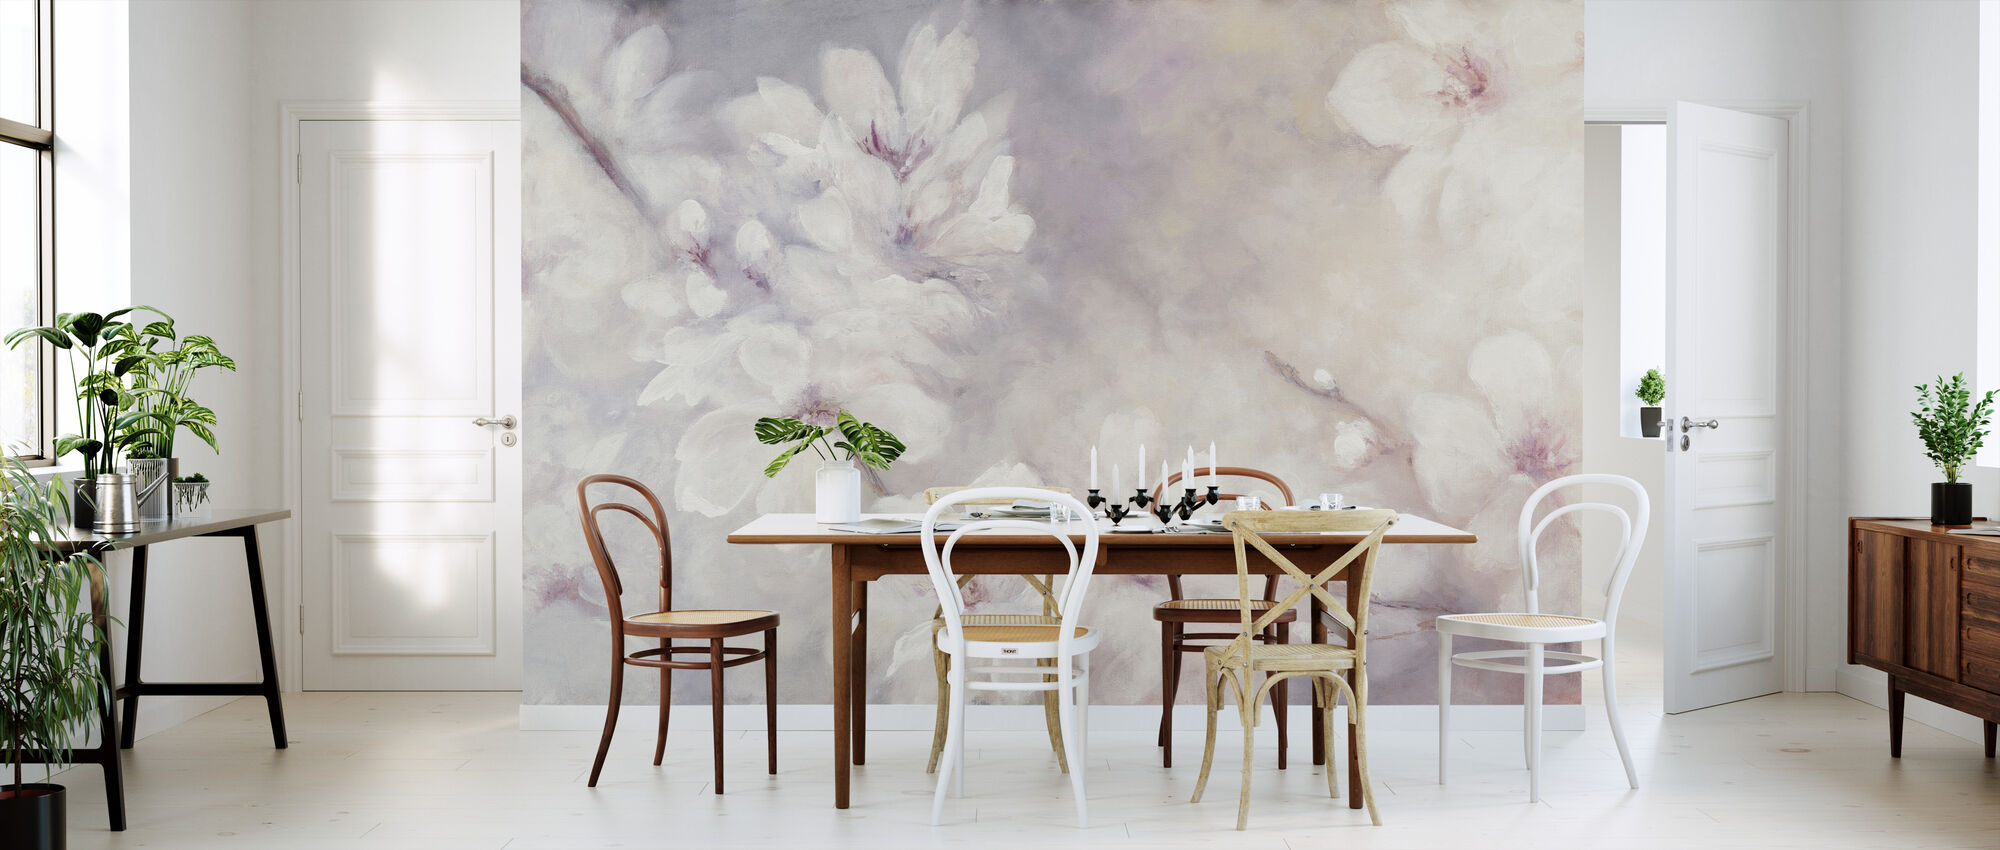 Cherry Blossoms Painting - Wallpaper - Kitchen